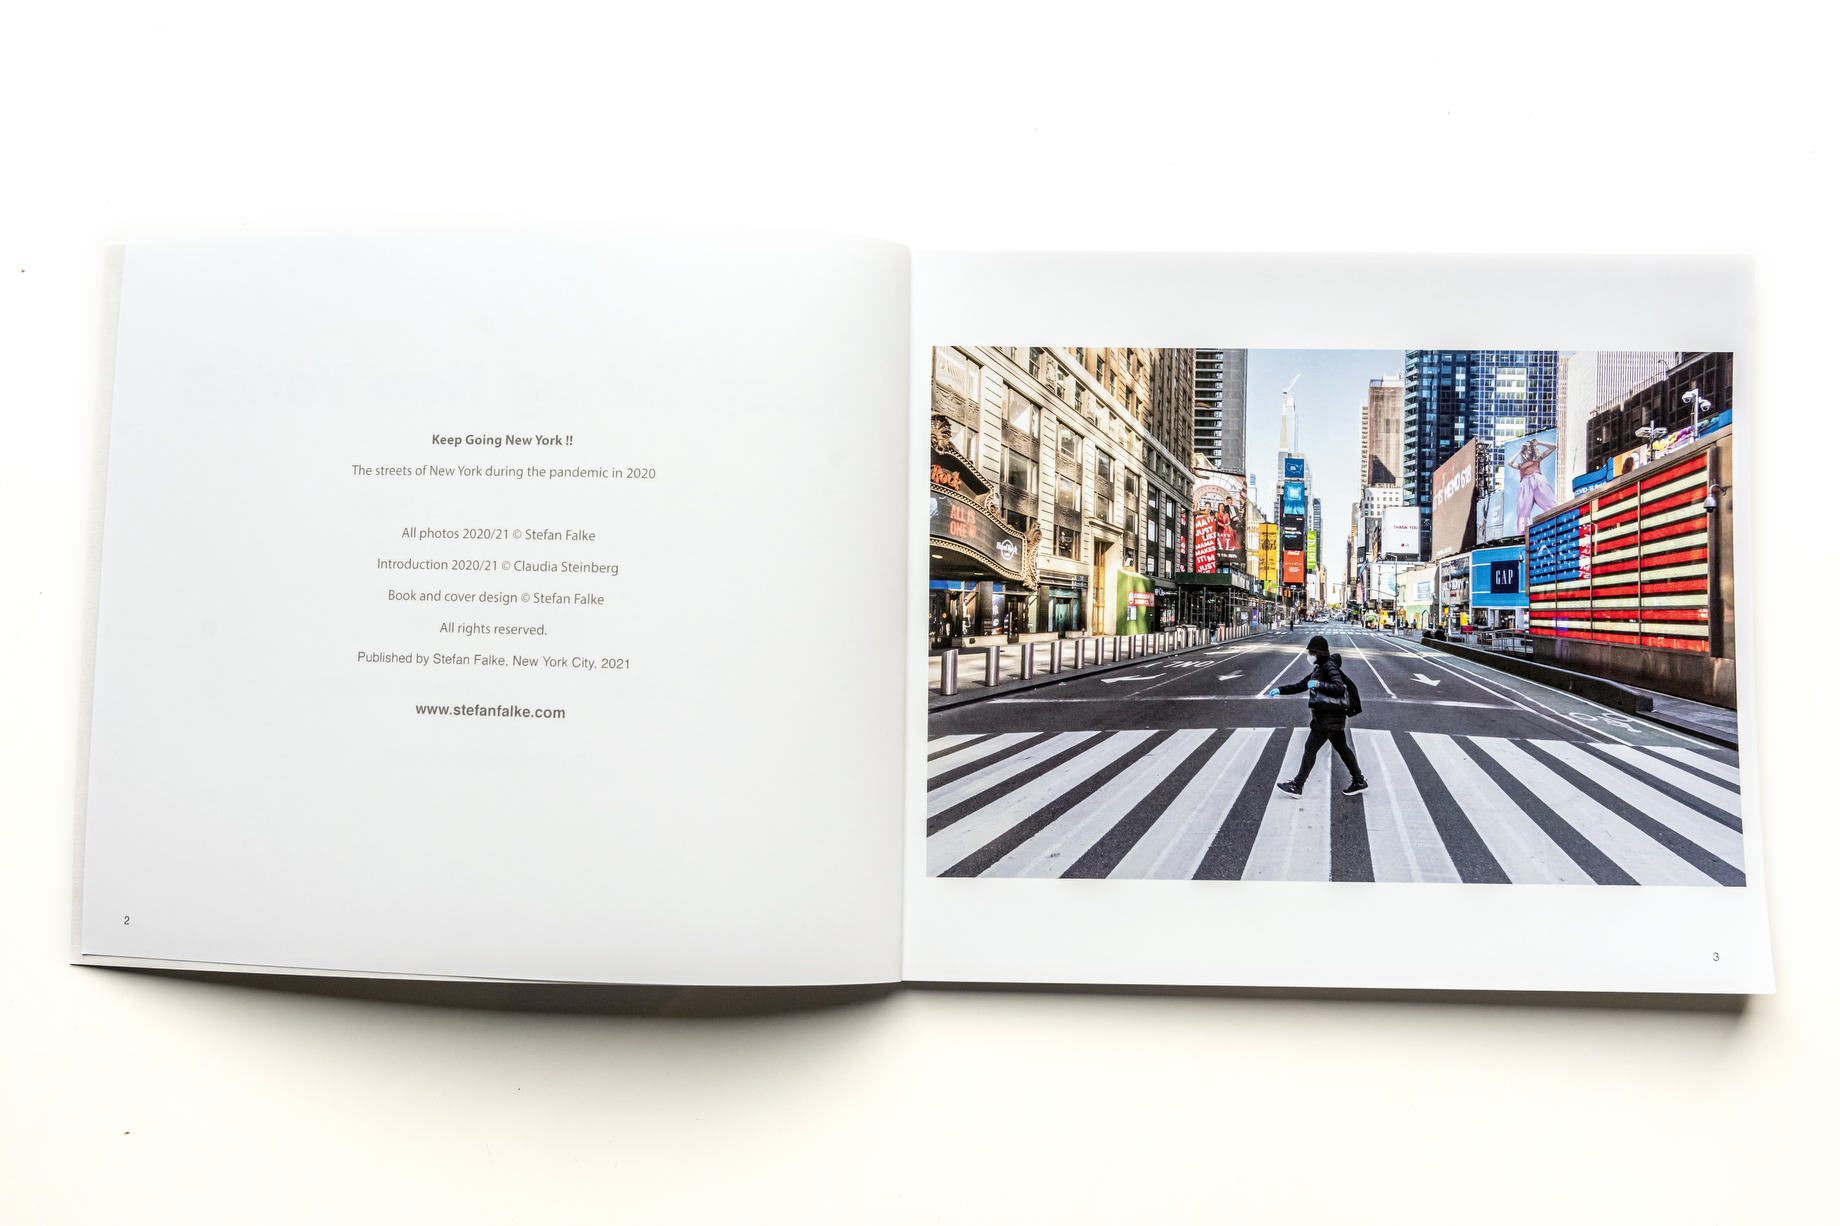 Keep_Going_New_York_book_2o4.JPG